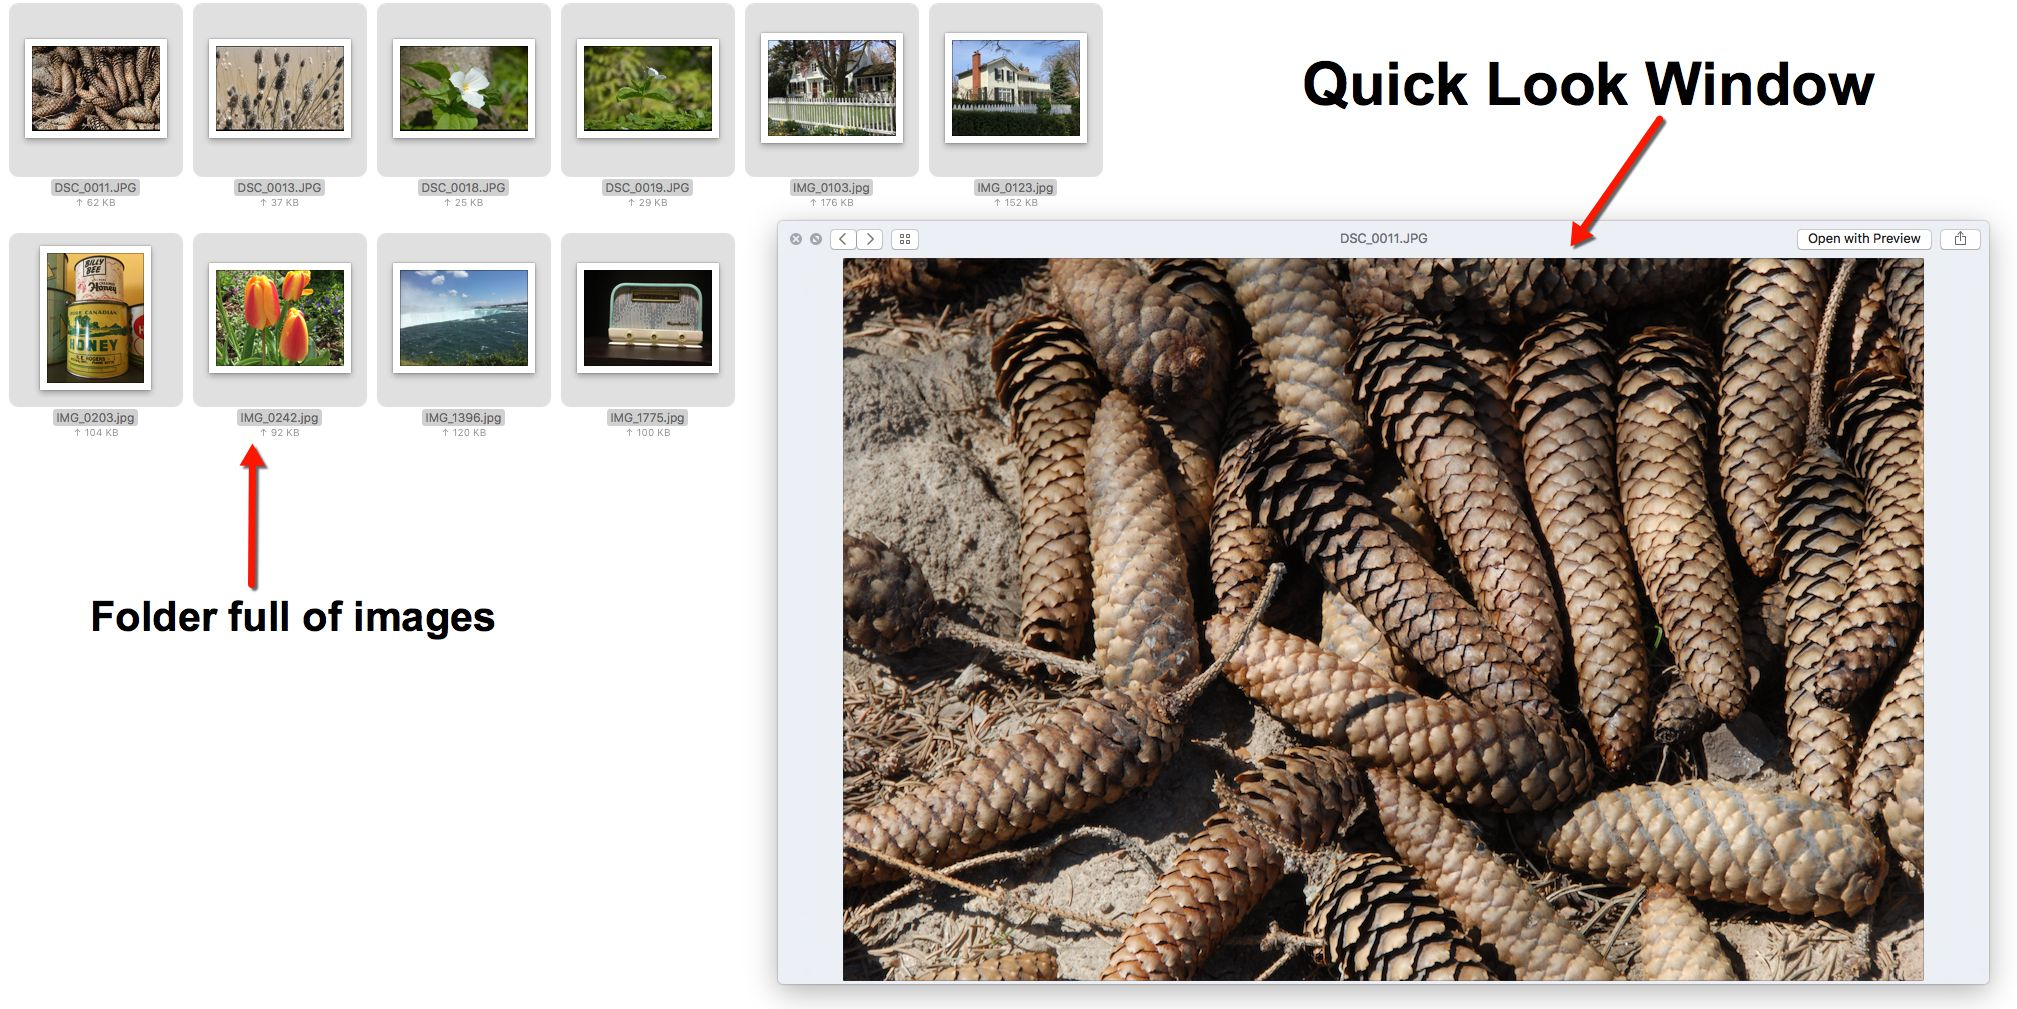 How to View an Image Folder With Quick Look in Mac Os X